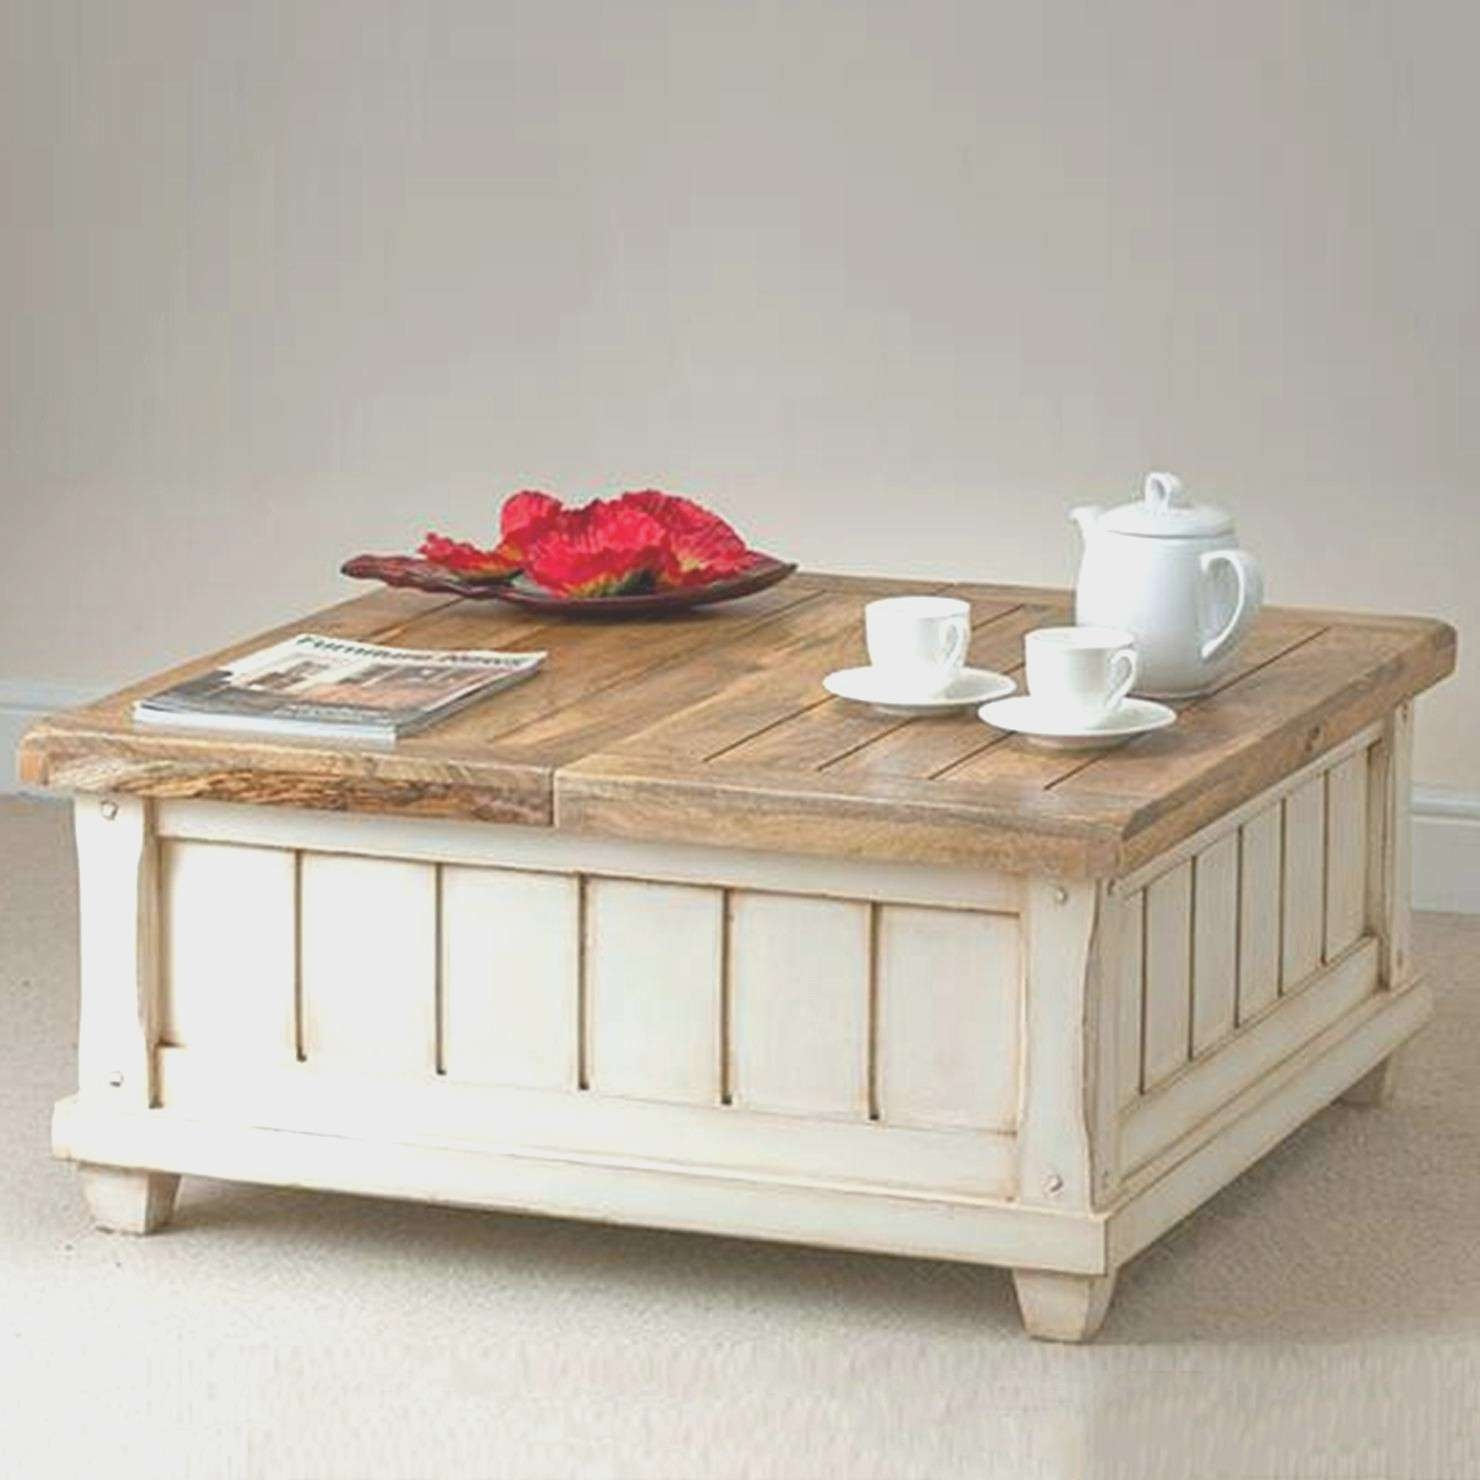 Coffe Table : White Coffee Table With Storage Baskets Popular Home Inside 2018 White Coffee Tables With Baskets (View 4 of 20)